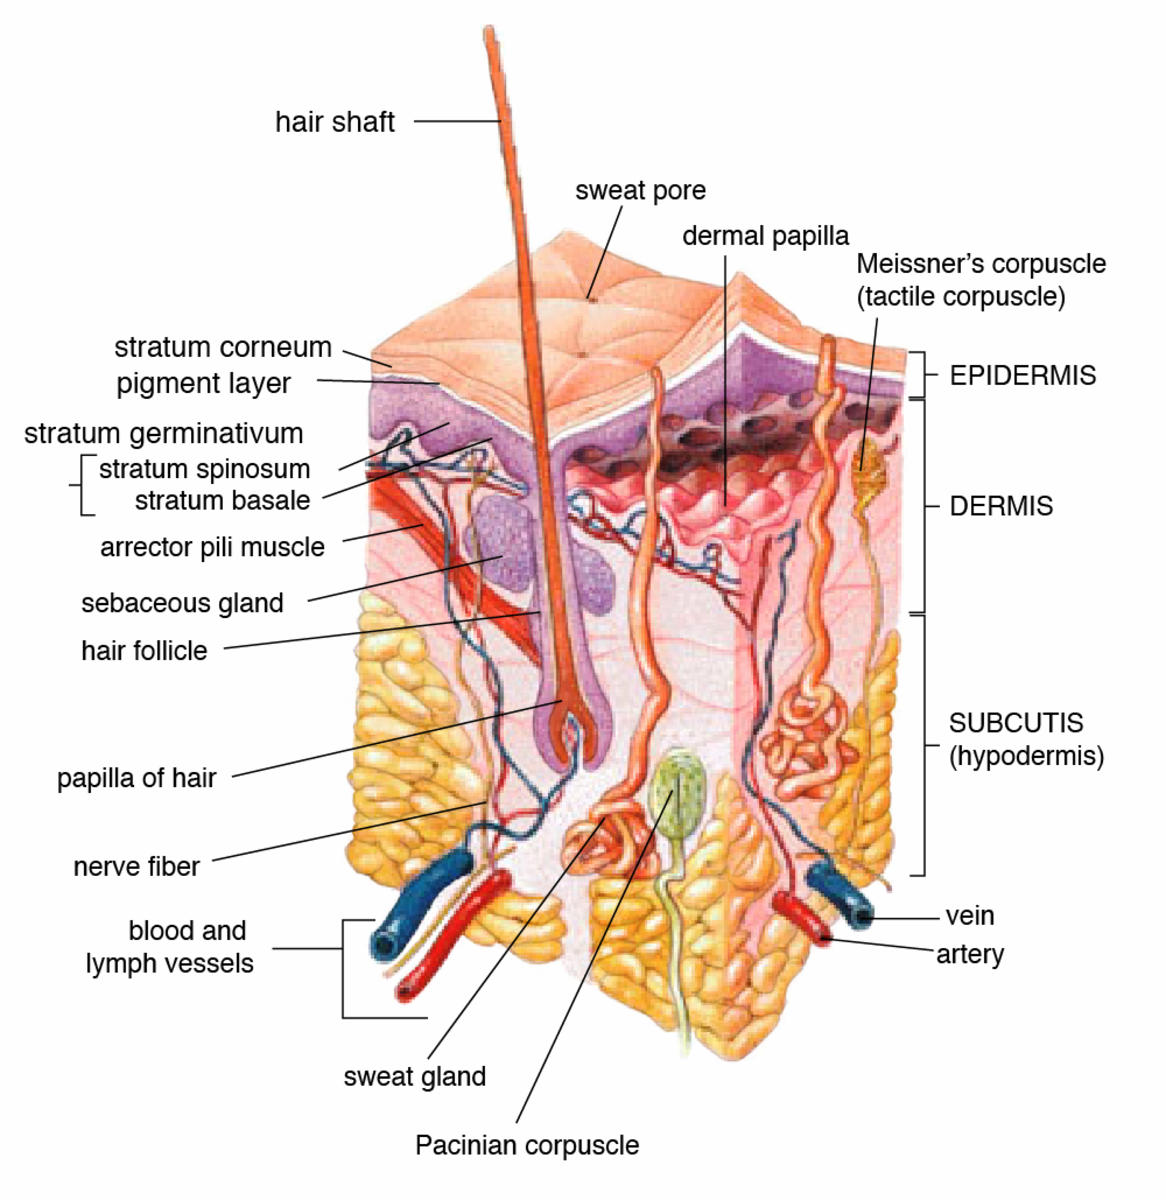 Normal anatomy of the hair follicle